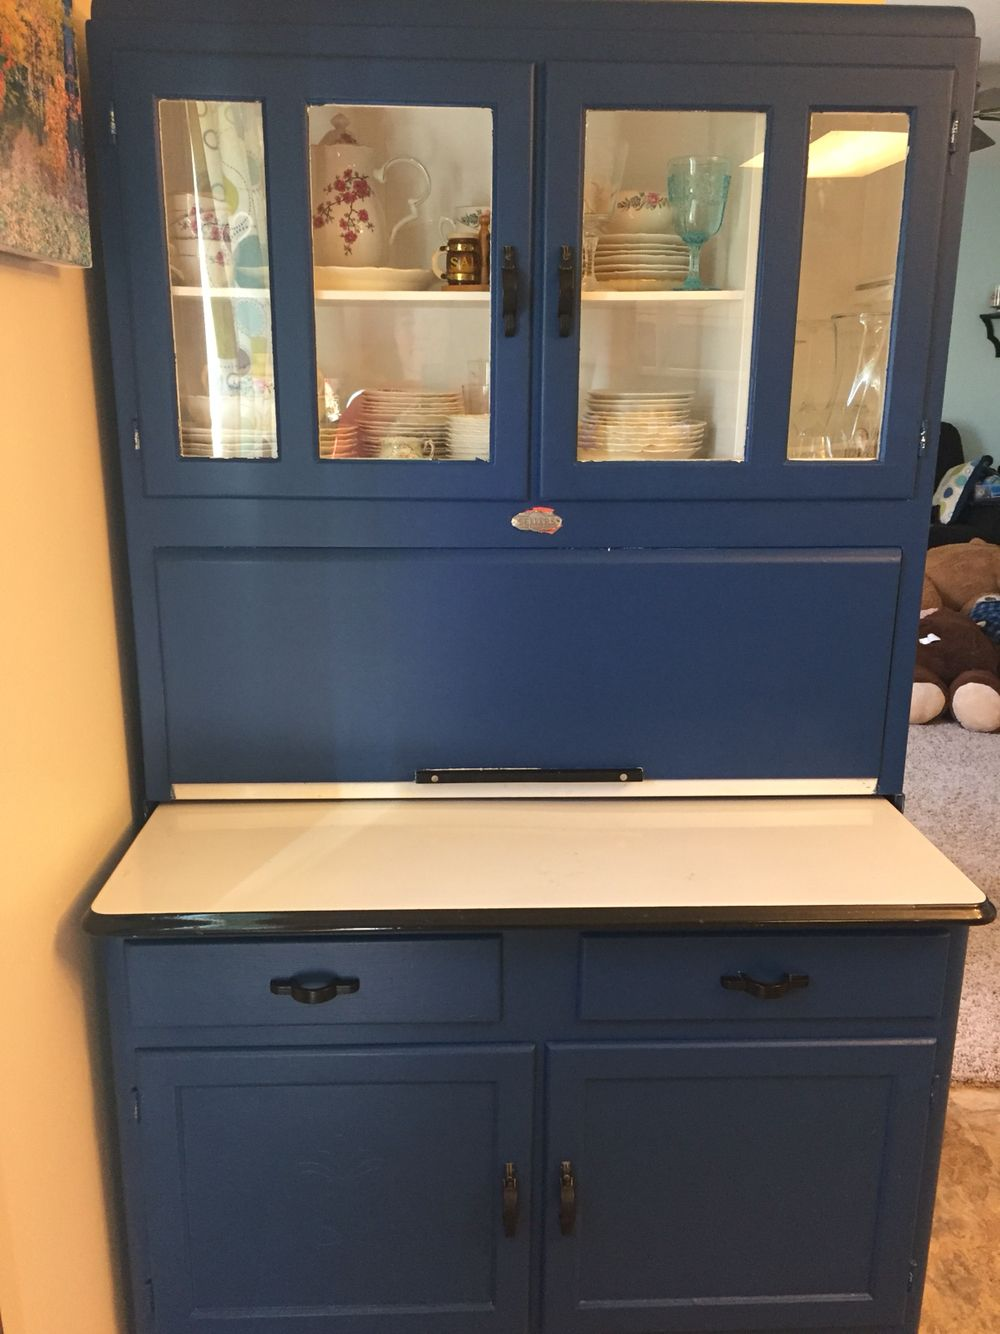 Hutch makeover. The deep blue turns this into a showpiece.